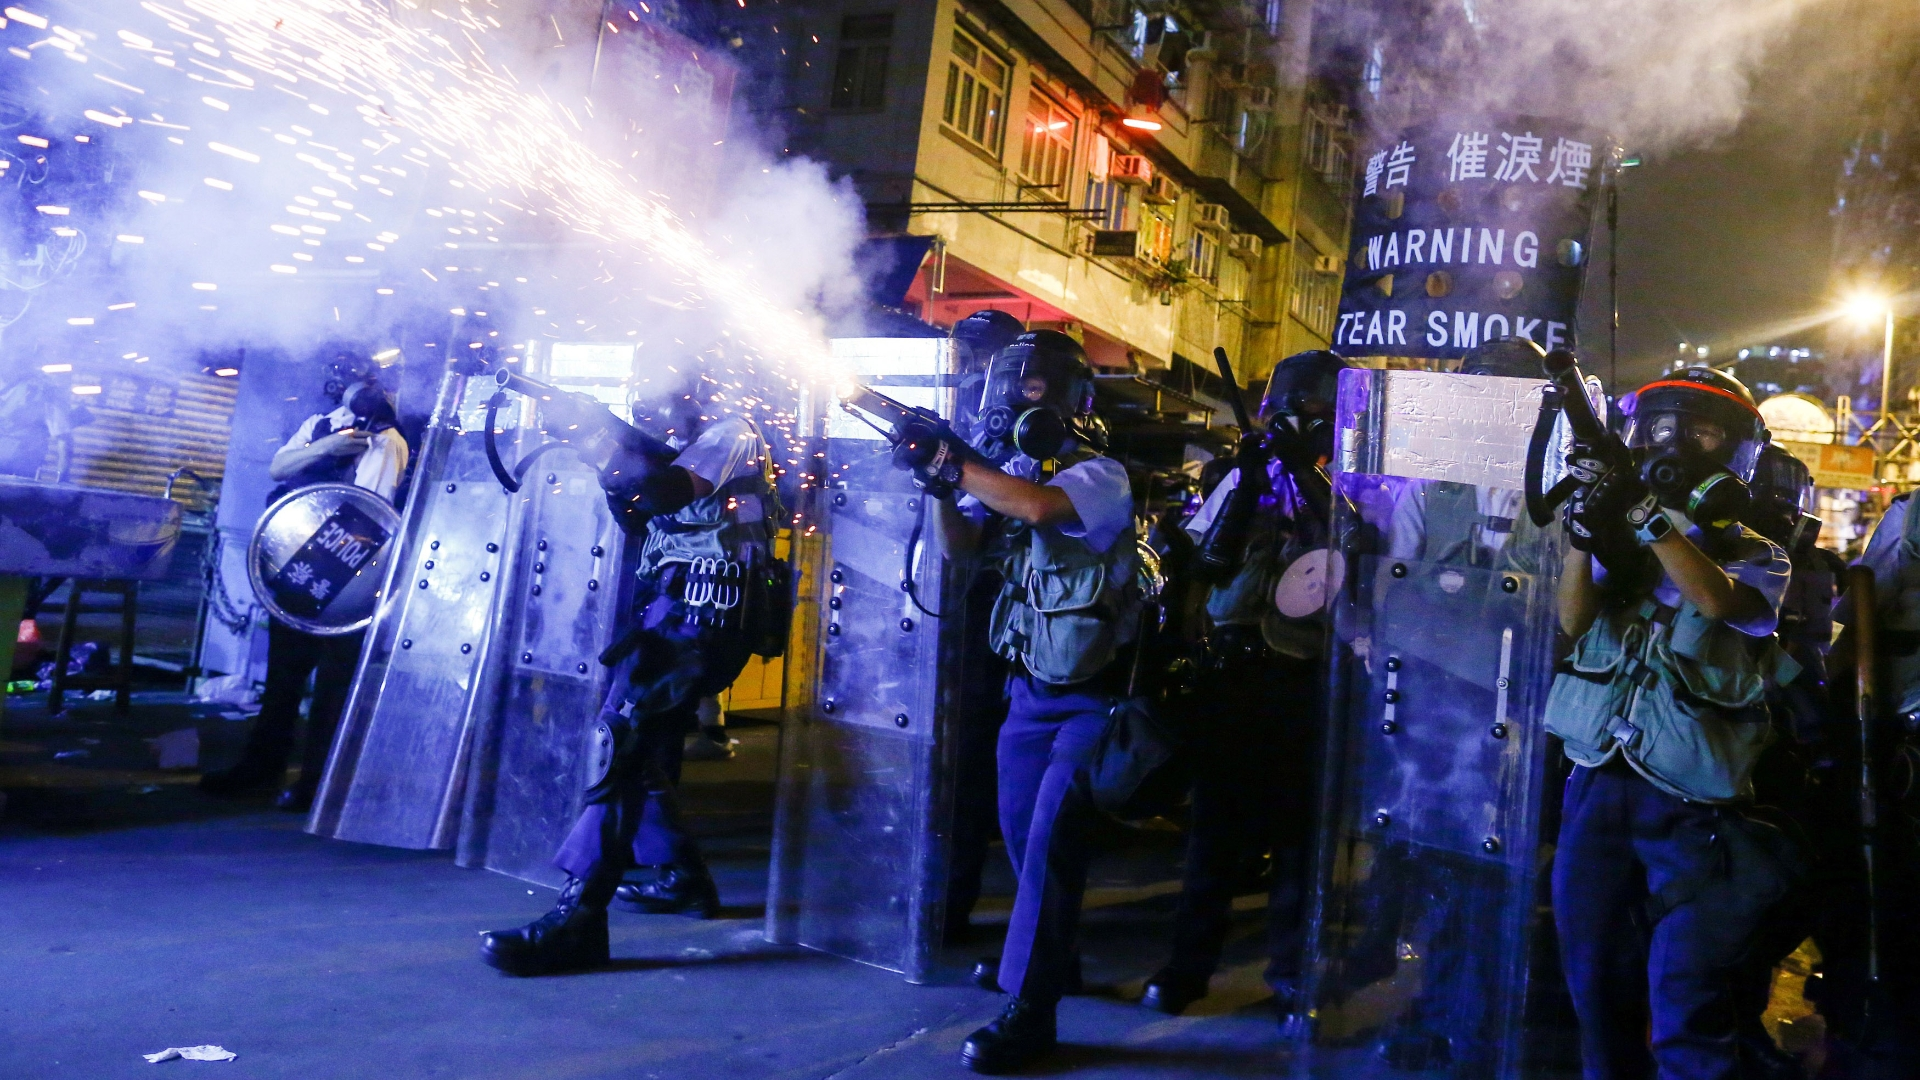 After airport mayhem, Hong Kong protesters face tipping point in battle for hearts and minds